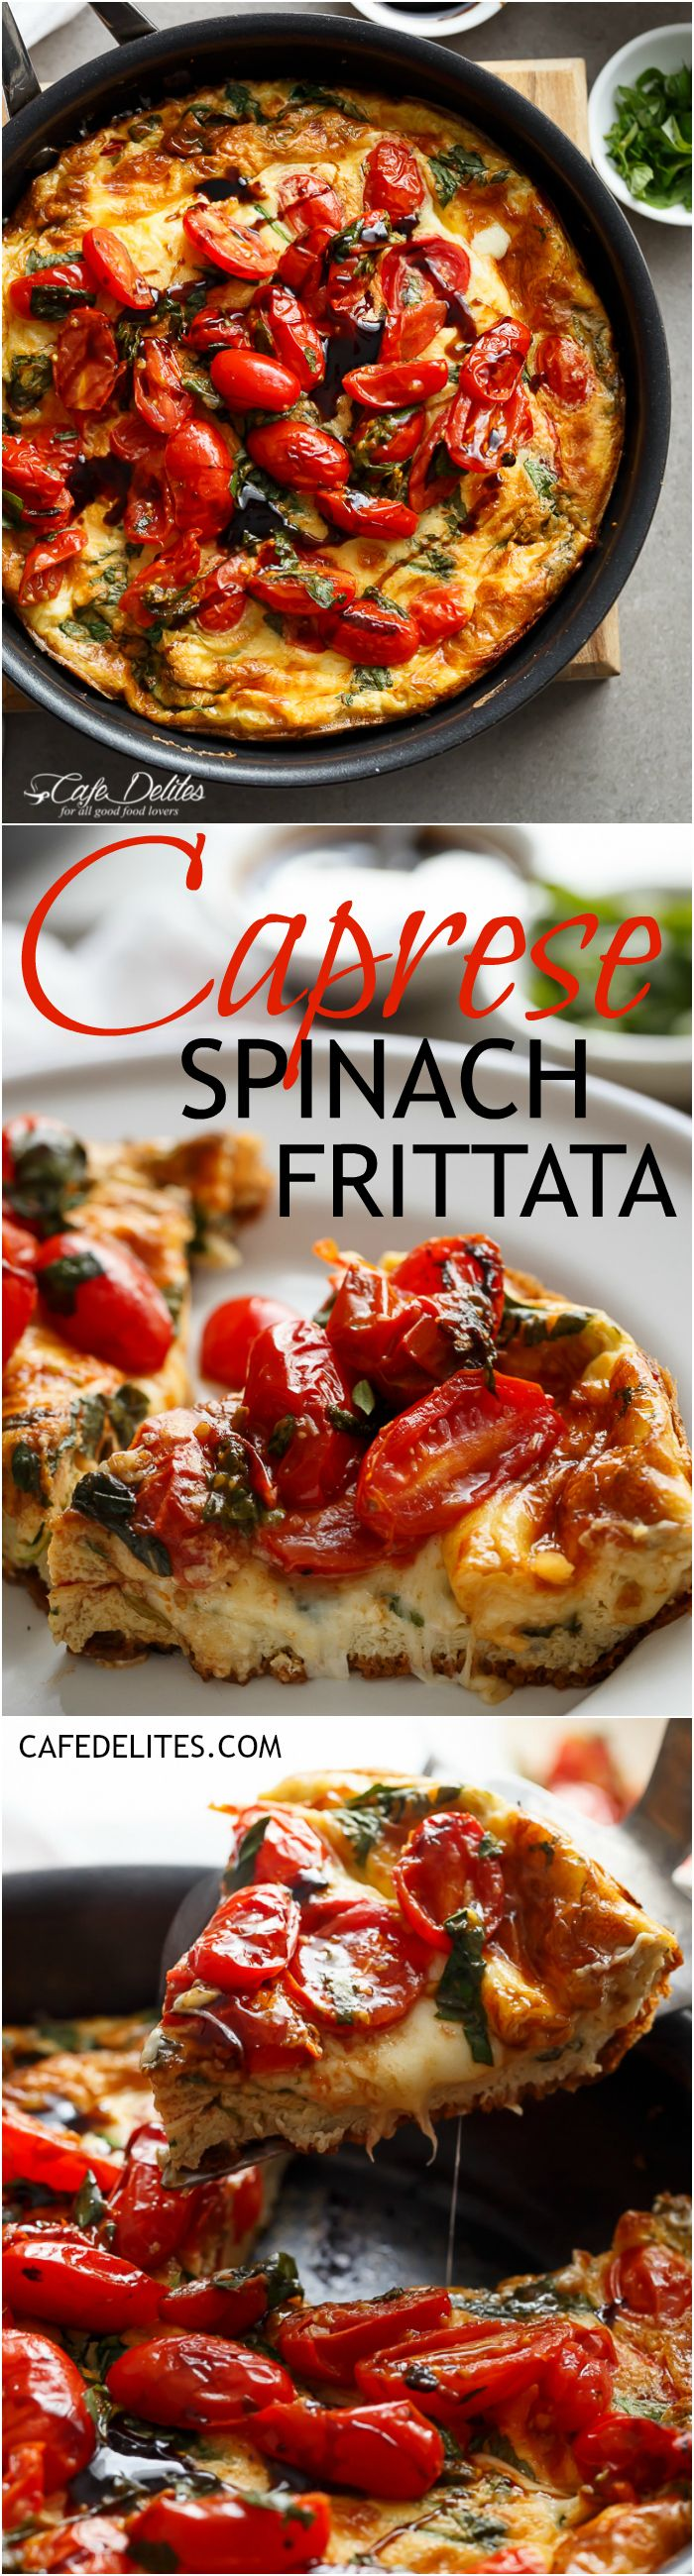 Garlic infused, Caprese Frittata with pan fried, juicy tomato and fresh basil flavors. Breakfast, brunch, lunch or dinner! Easy to make and low carb/cal!   http://cafedelites.com